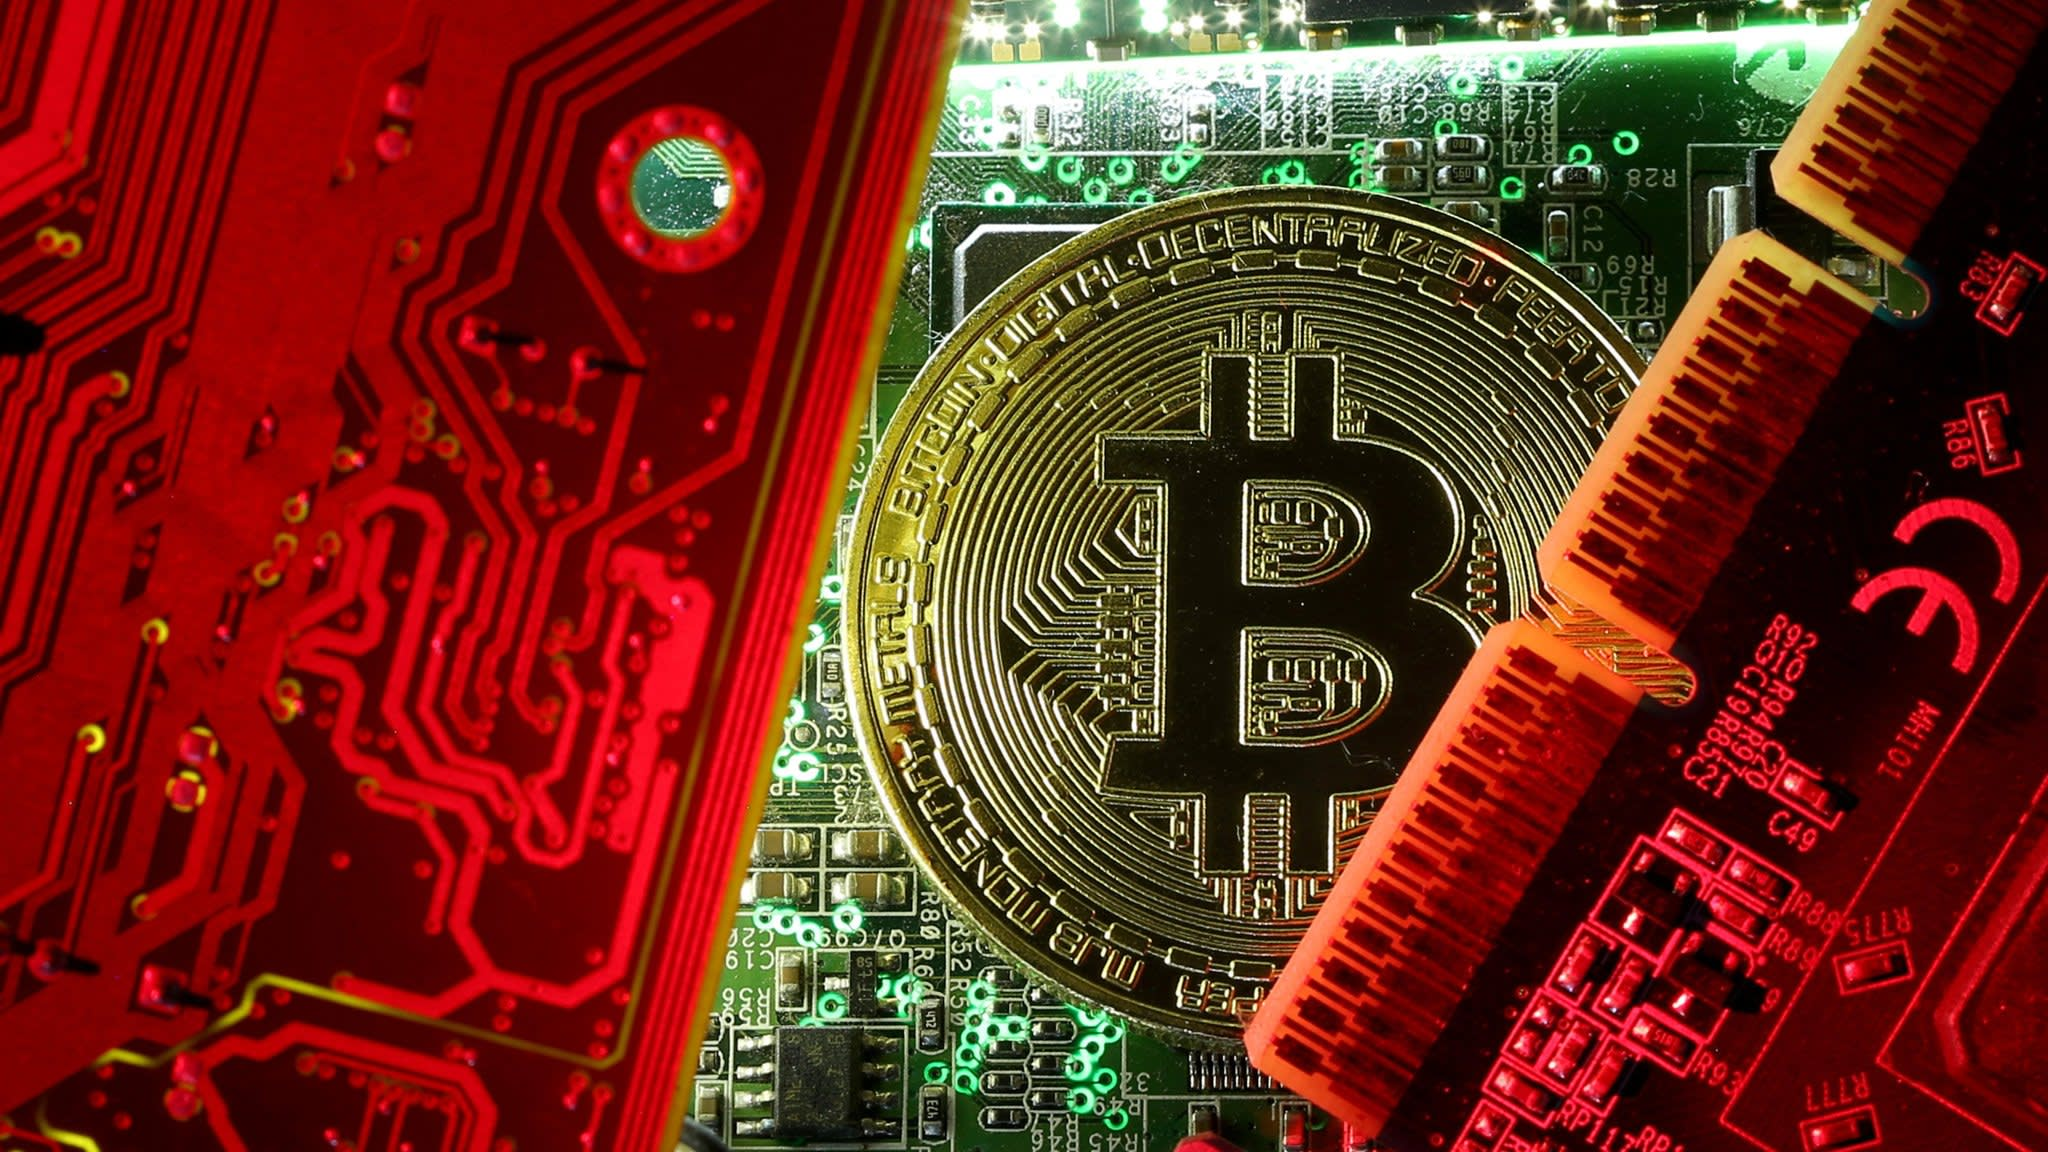 Stay in bitcoin and other cryptocurrencies for the long haul - Financial TimesStay in bitcoin and other cryptocurrencies for the long haul - 웹